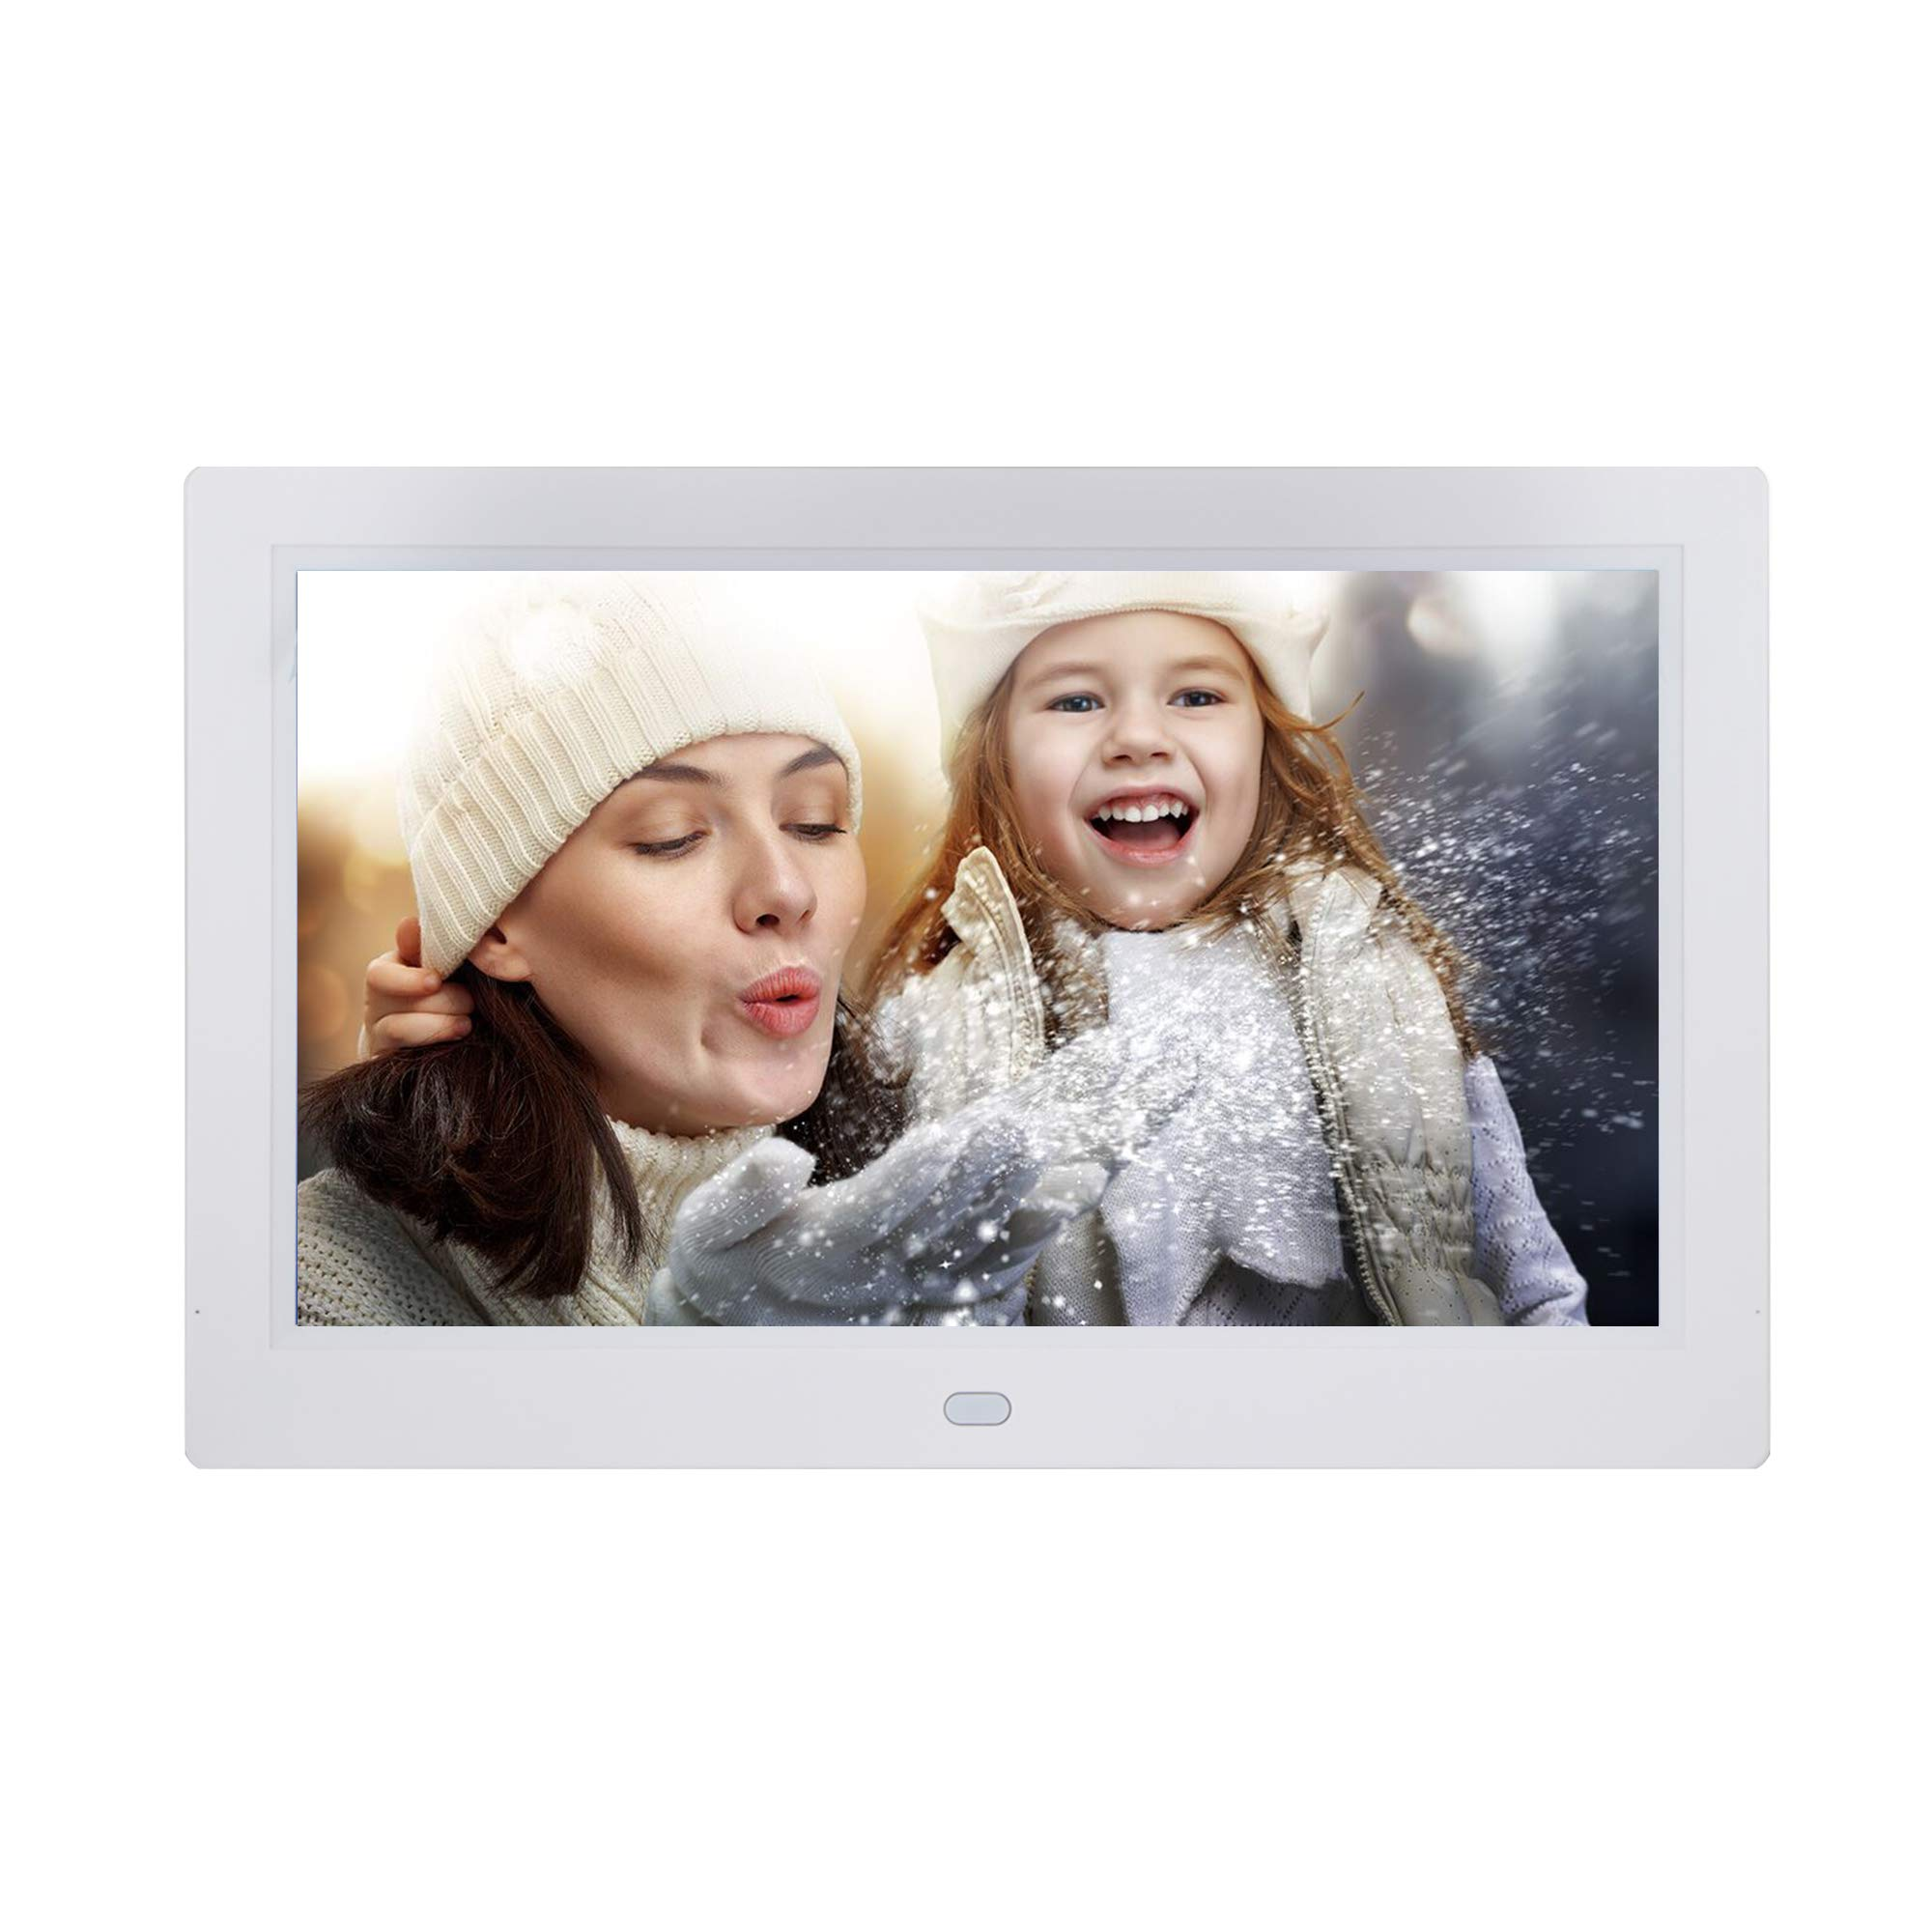 10 inch Digital Photo Frame Digital Picture Frame with Remote Control, Photo Video MP3 Player / 4 Windows/Calendar/Alarm Clock / 5 Languages Electronic Photo Frame for Desk Wall by Jaihonda